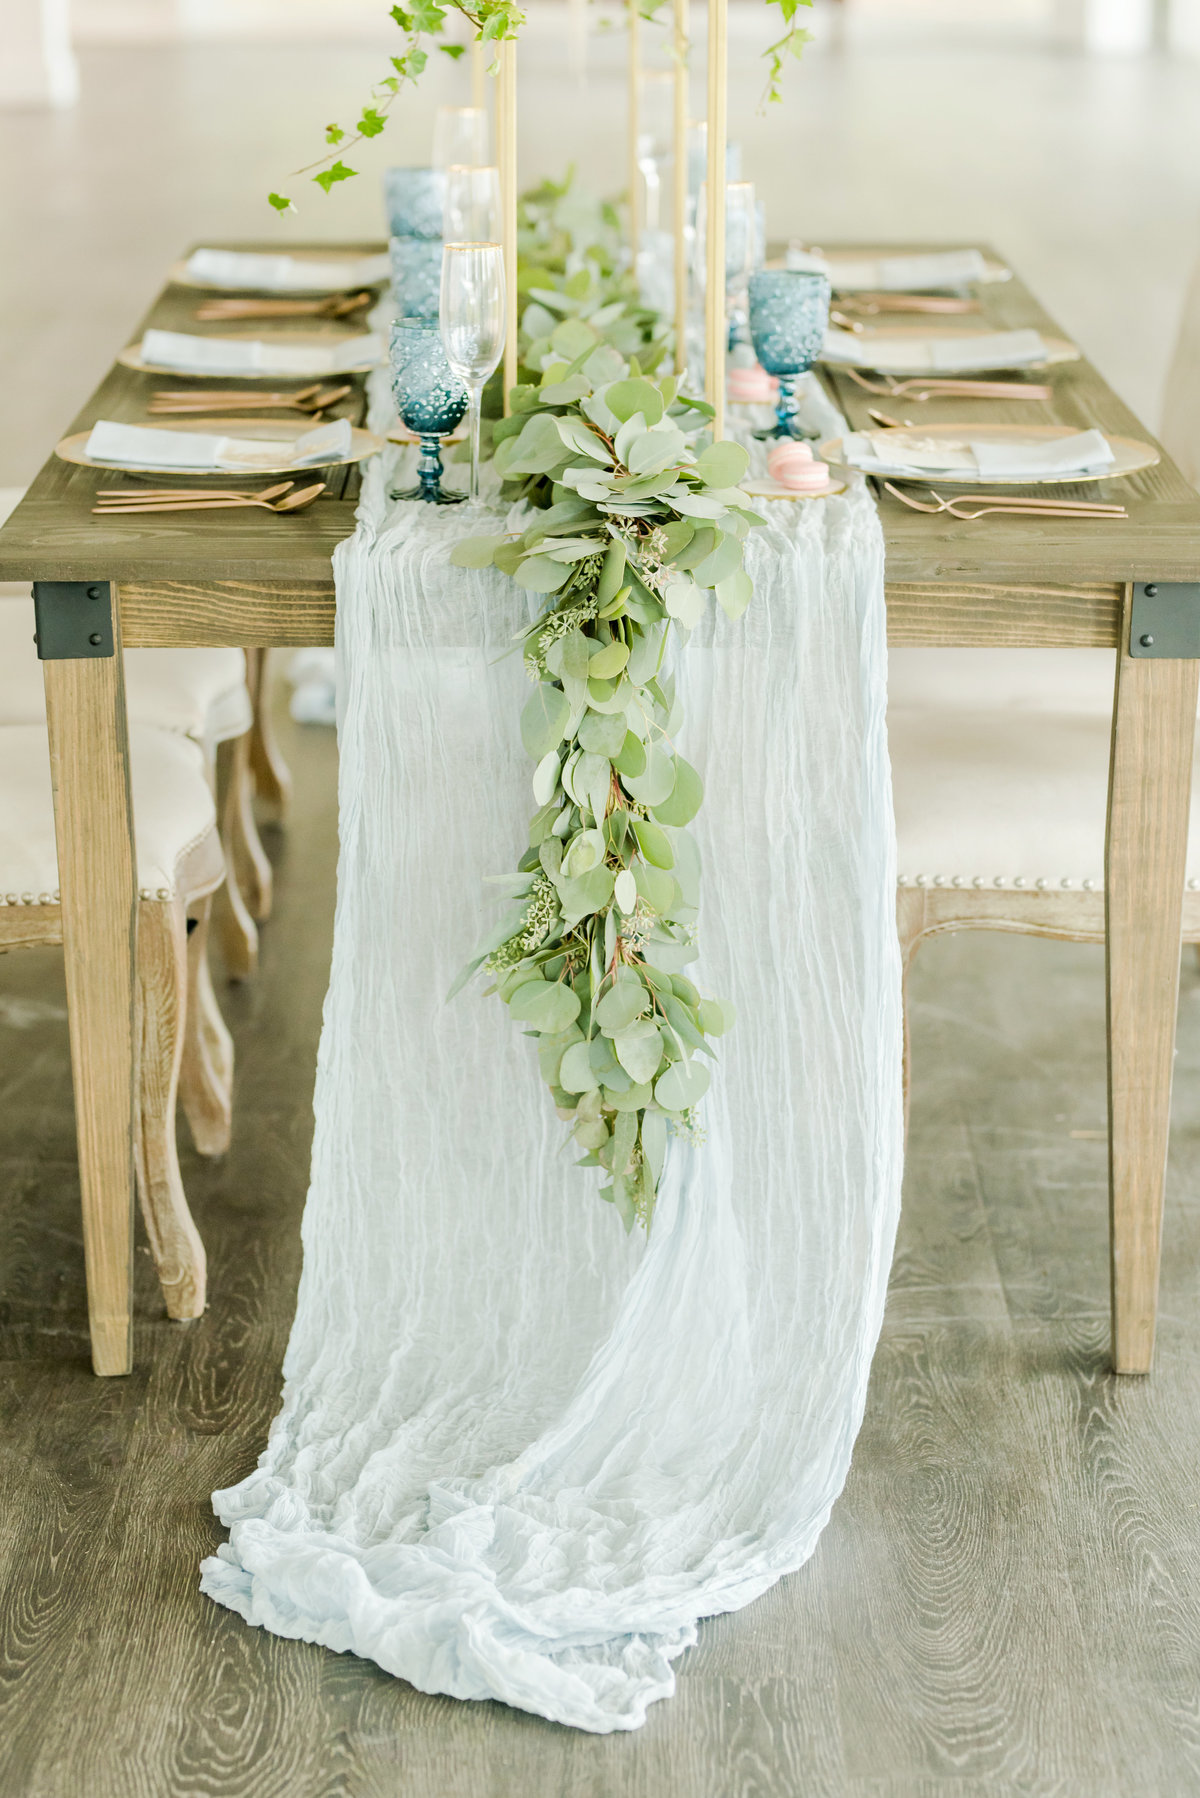 Barn table covered with white linen table runner and place settings for wedding